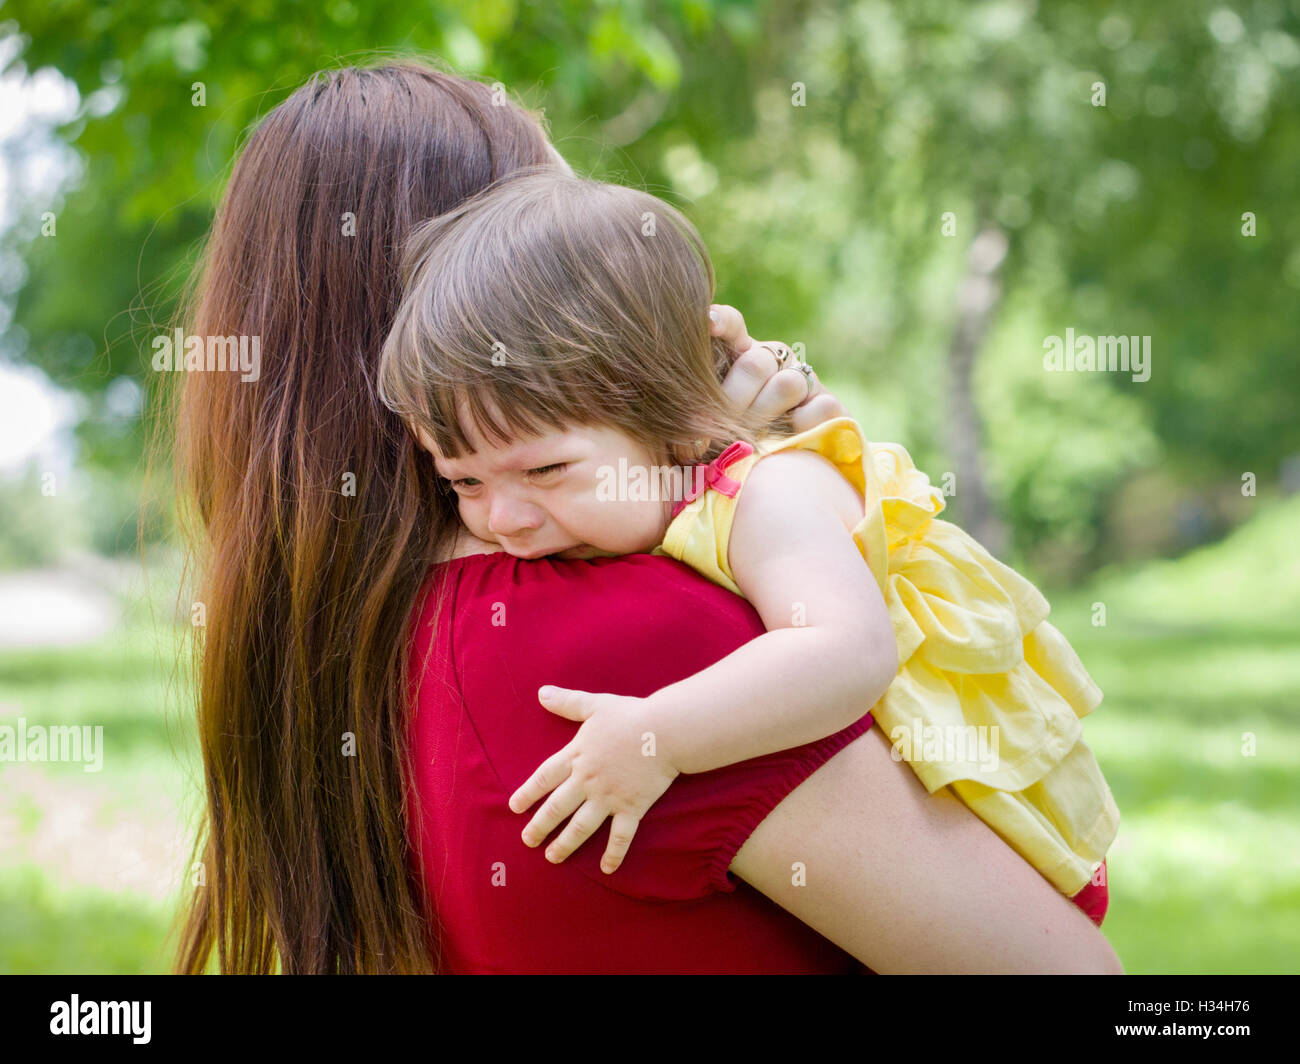 Mother holding crying baby girl with tears - Stock Image